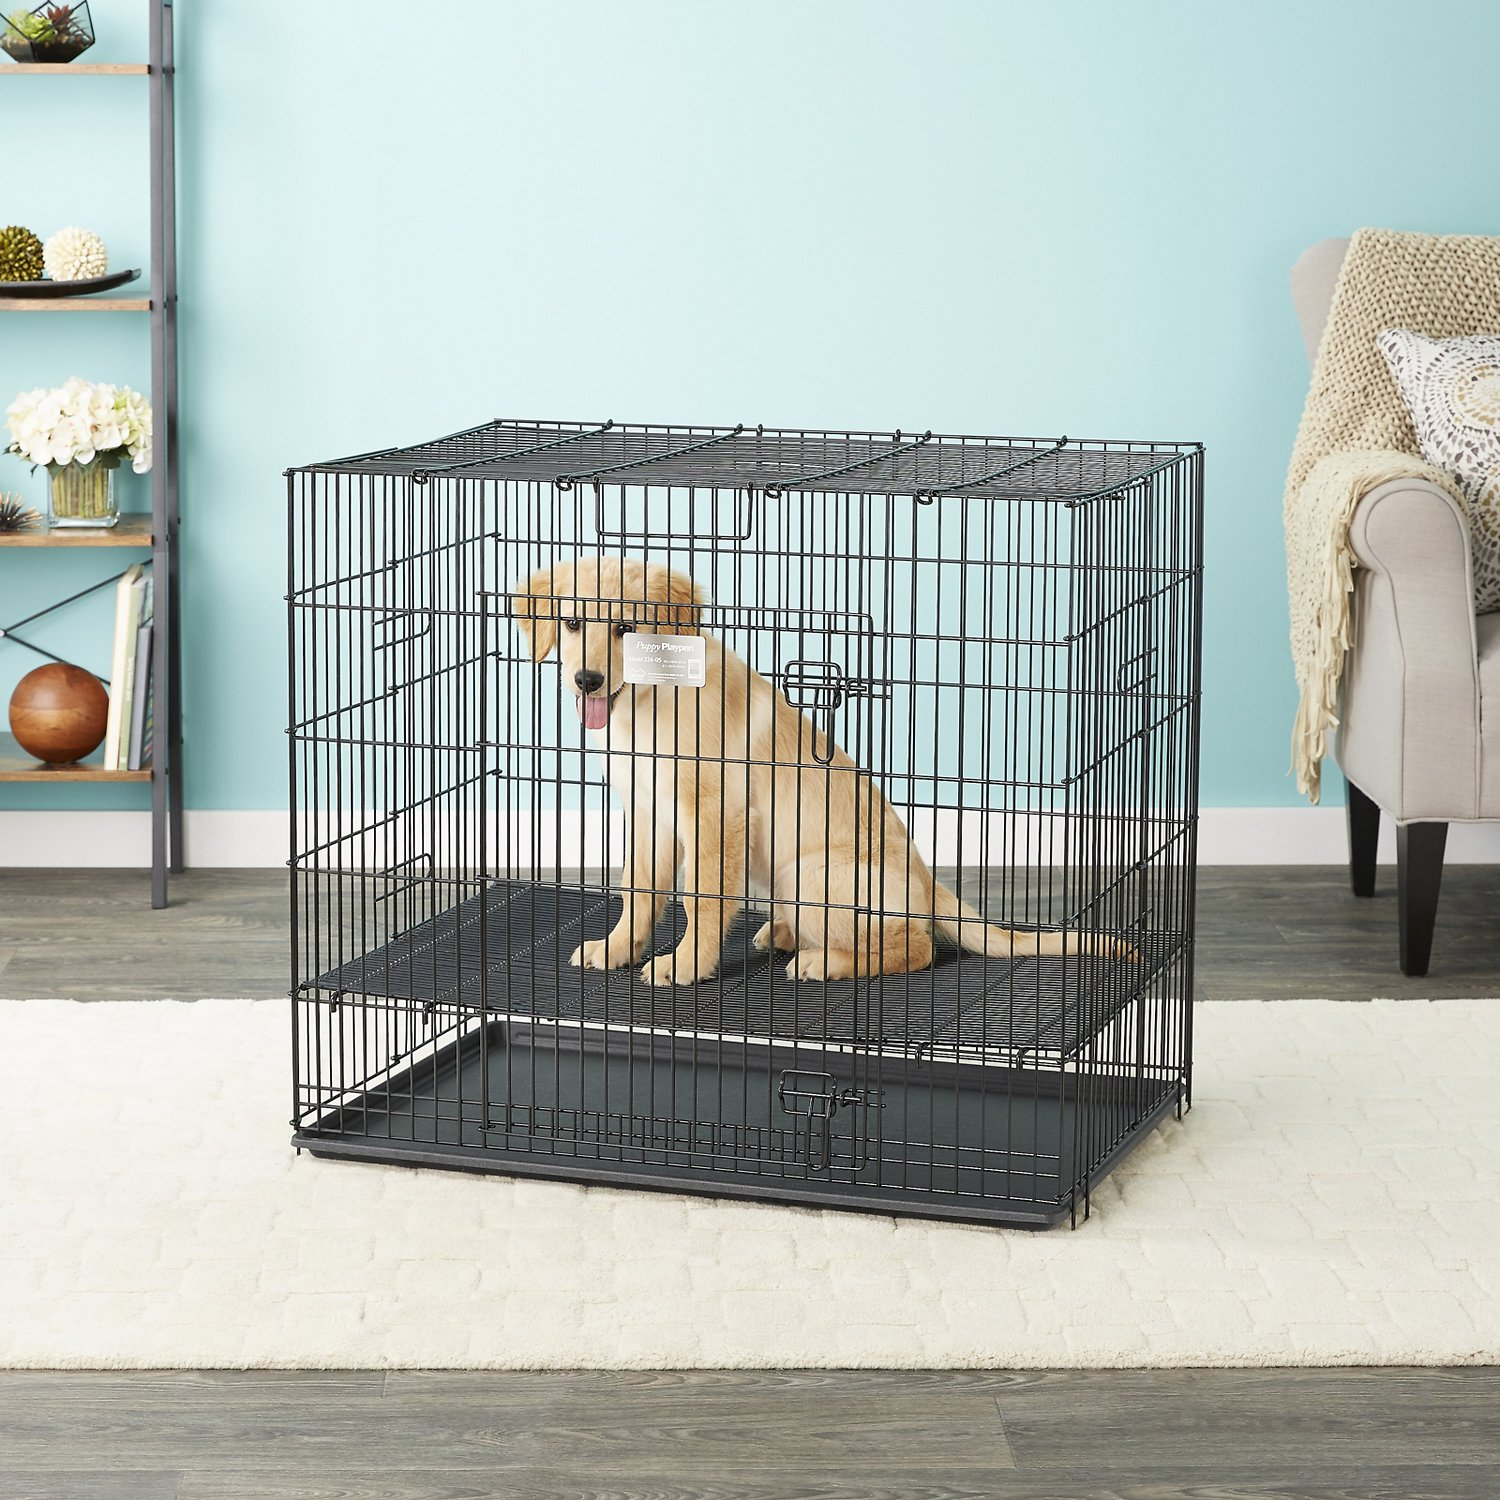 Midwest Puppy Playpen With Floor Grid Small 1 2 In Floor Grid